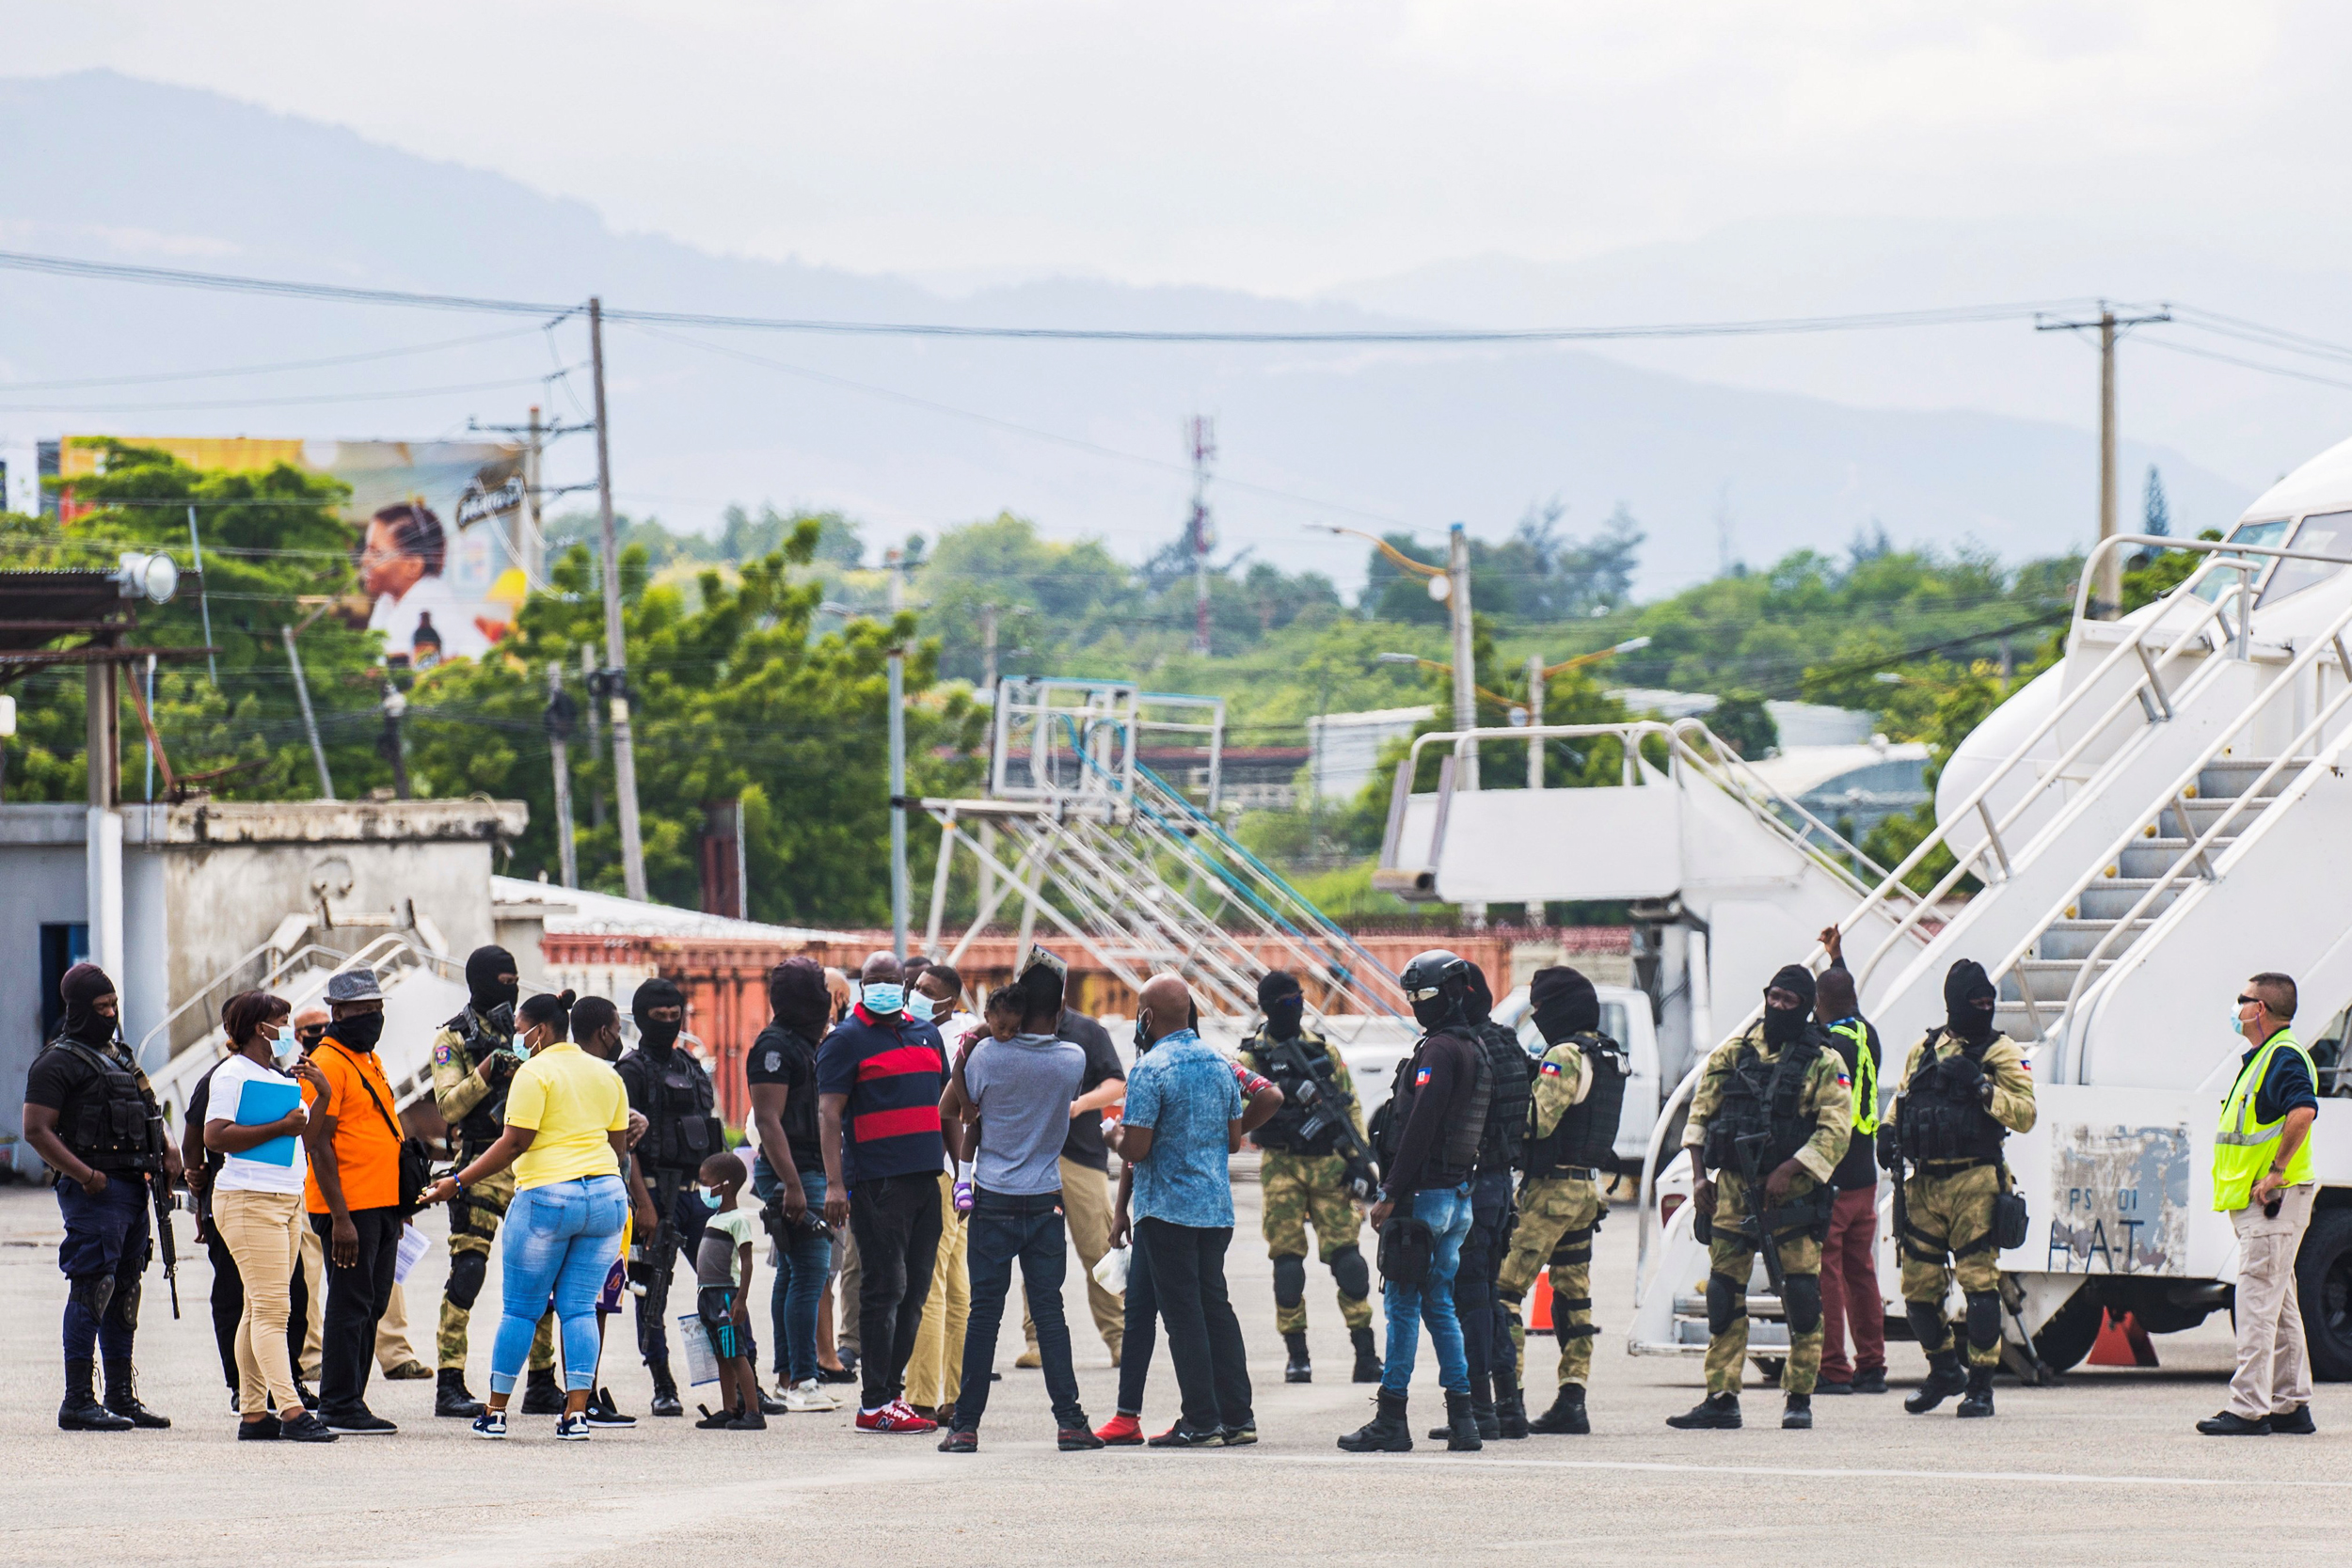 Treatment of Haitians at border exposes double standard toward refugees